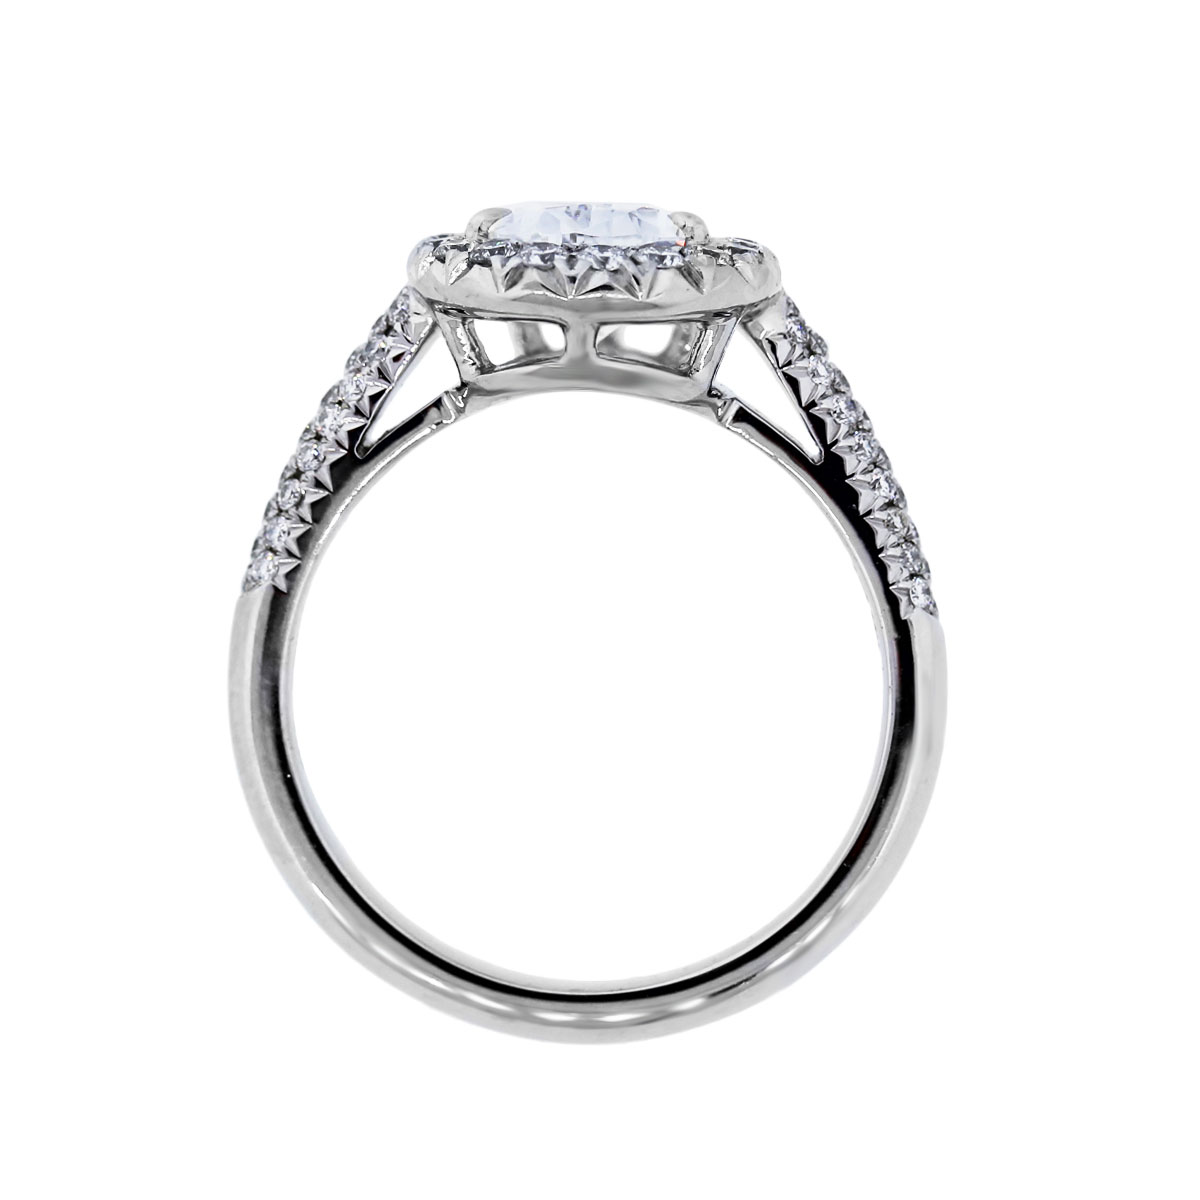 Platinum 1.67ct Pear Shape Diamond GIA certified Engagement Mounting